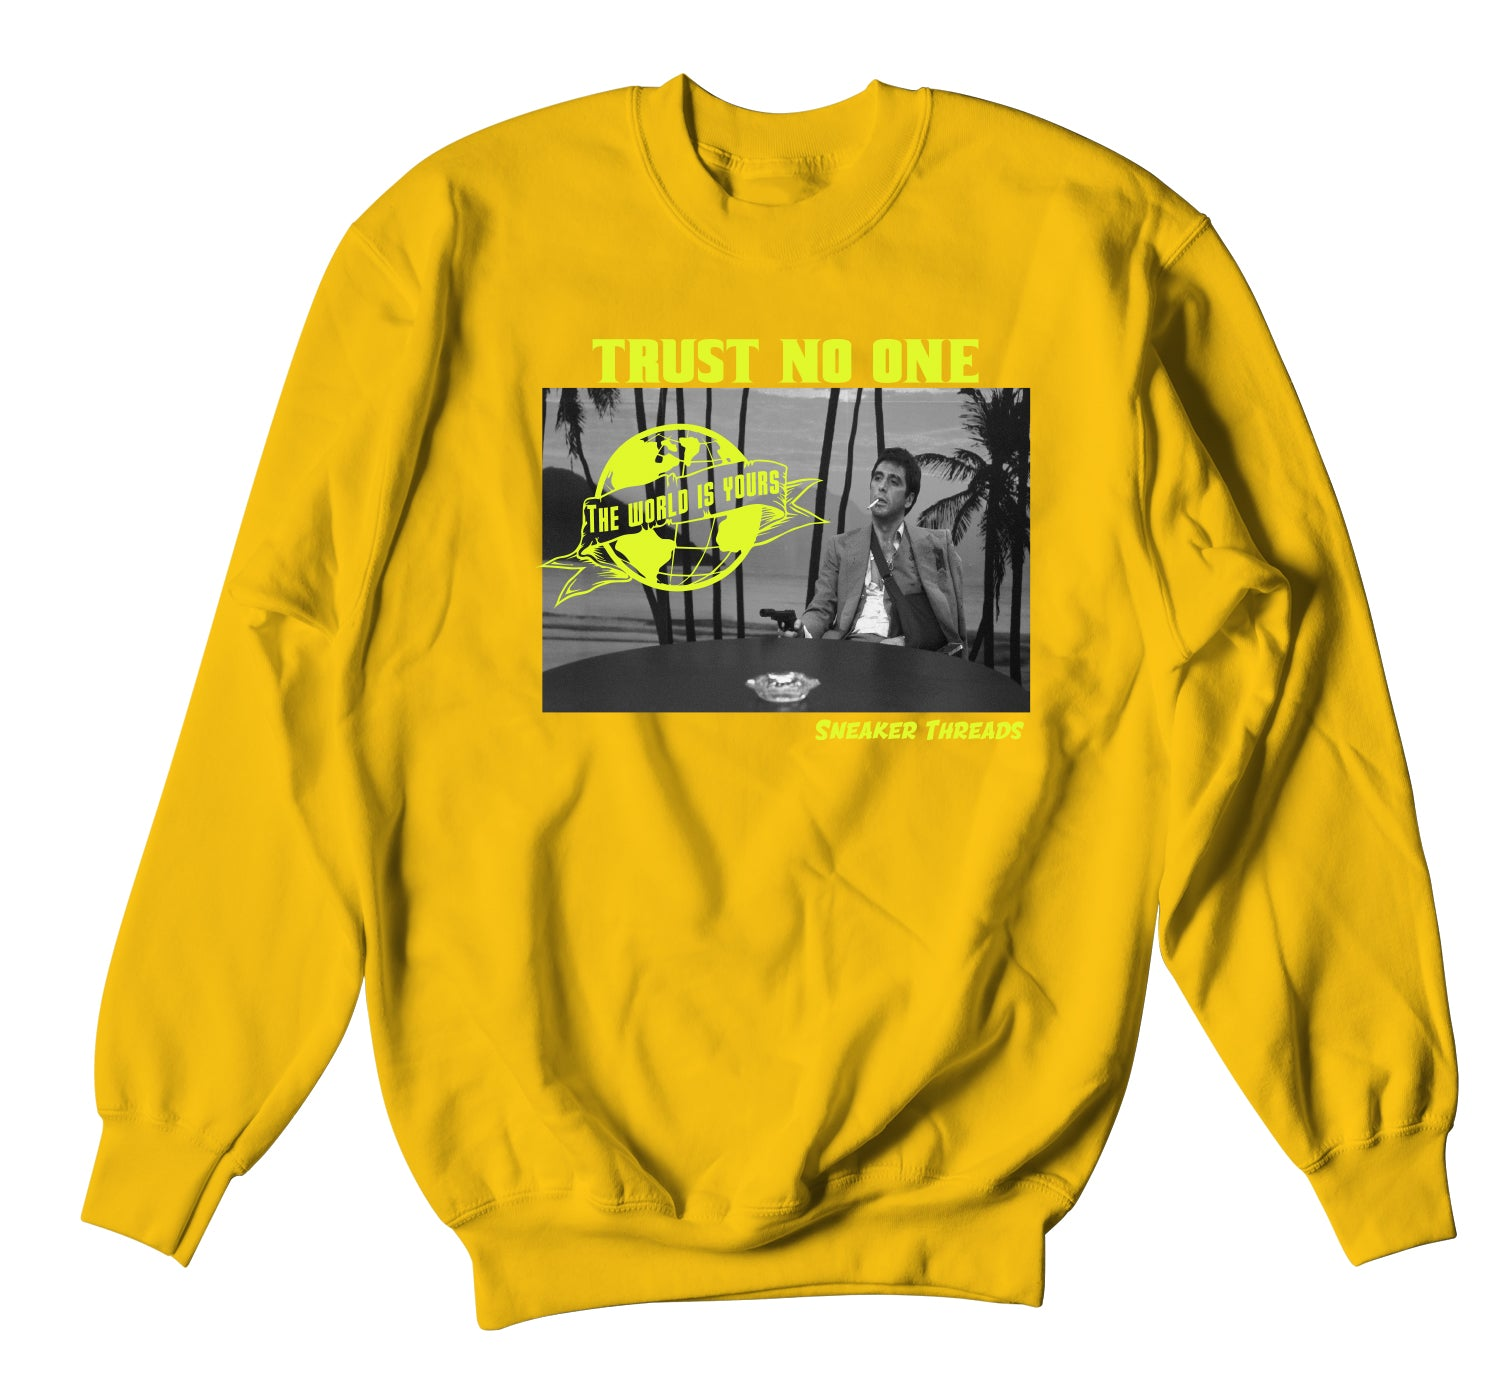 Mens sweaters to match the Jordan 1 volt gold sneaker collection